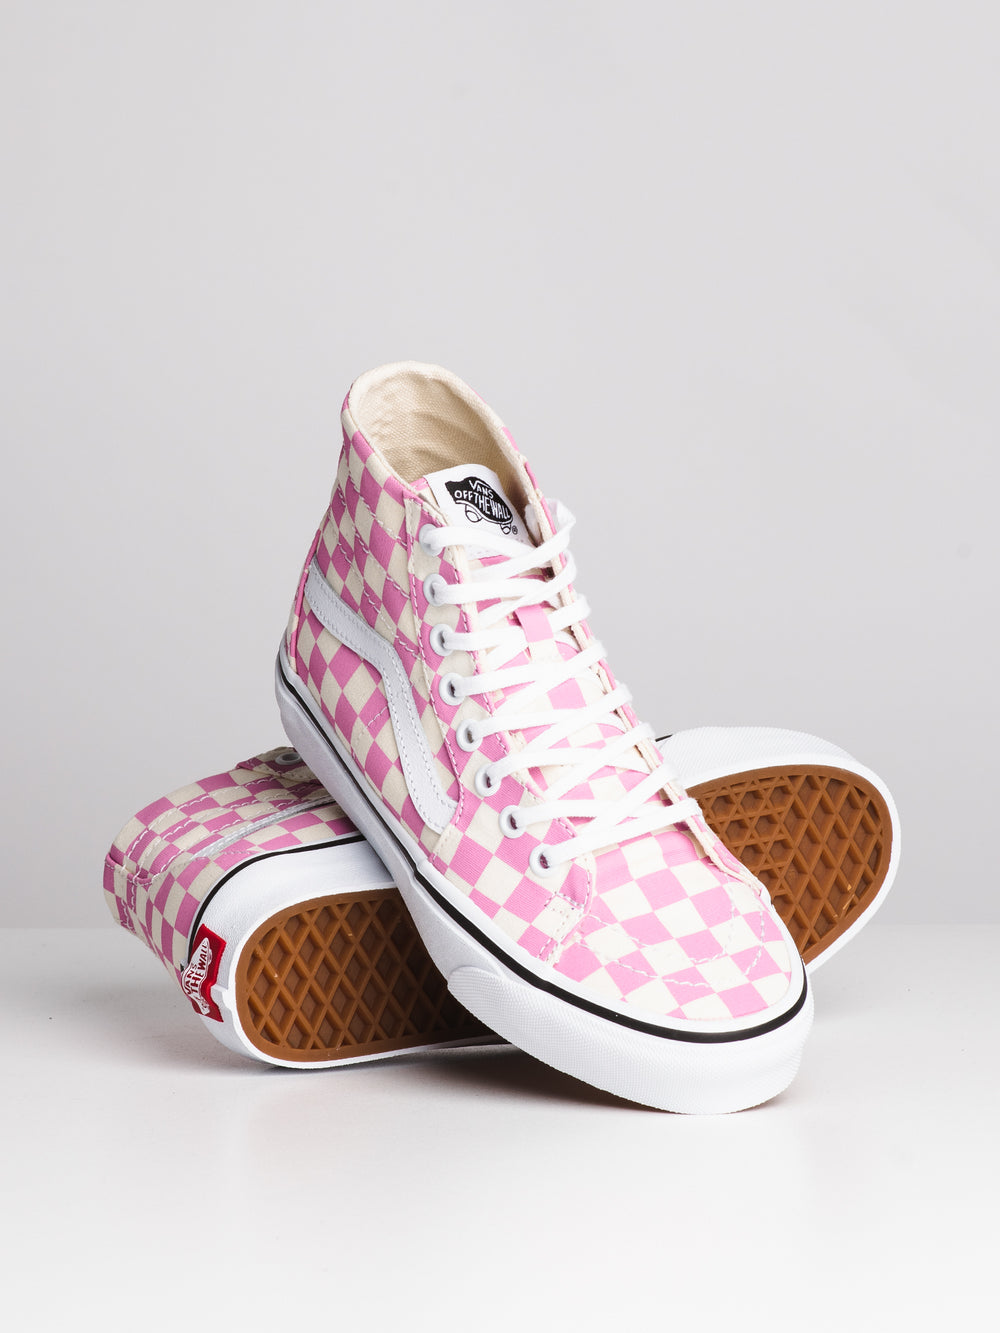 WOMENS SK8 HI TAPERED - CHECKER FUS